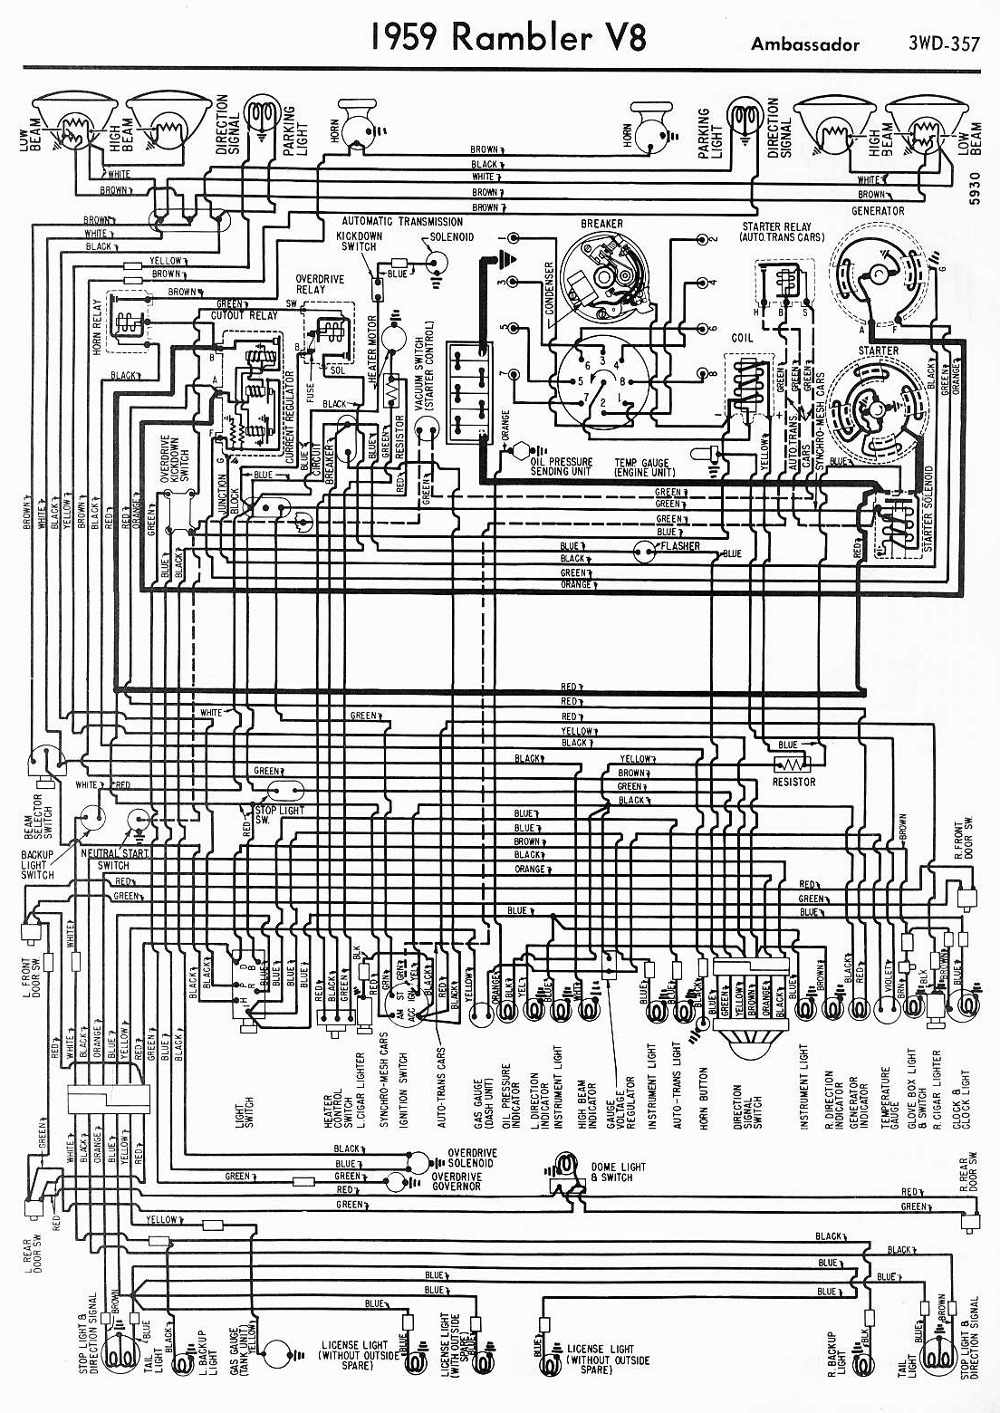 Wiring Diagrams For 1968 Amc Library Diagram Further 1972 Javelin On 1970 Amx Trusted U2022 Body